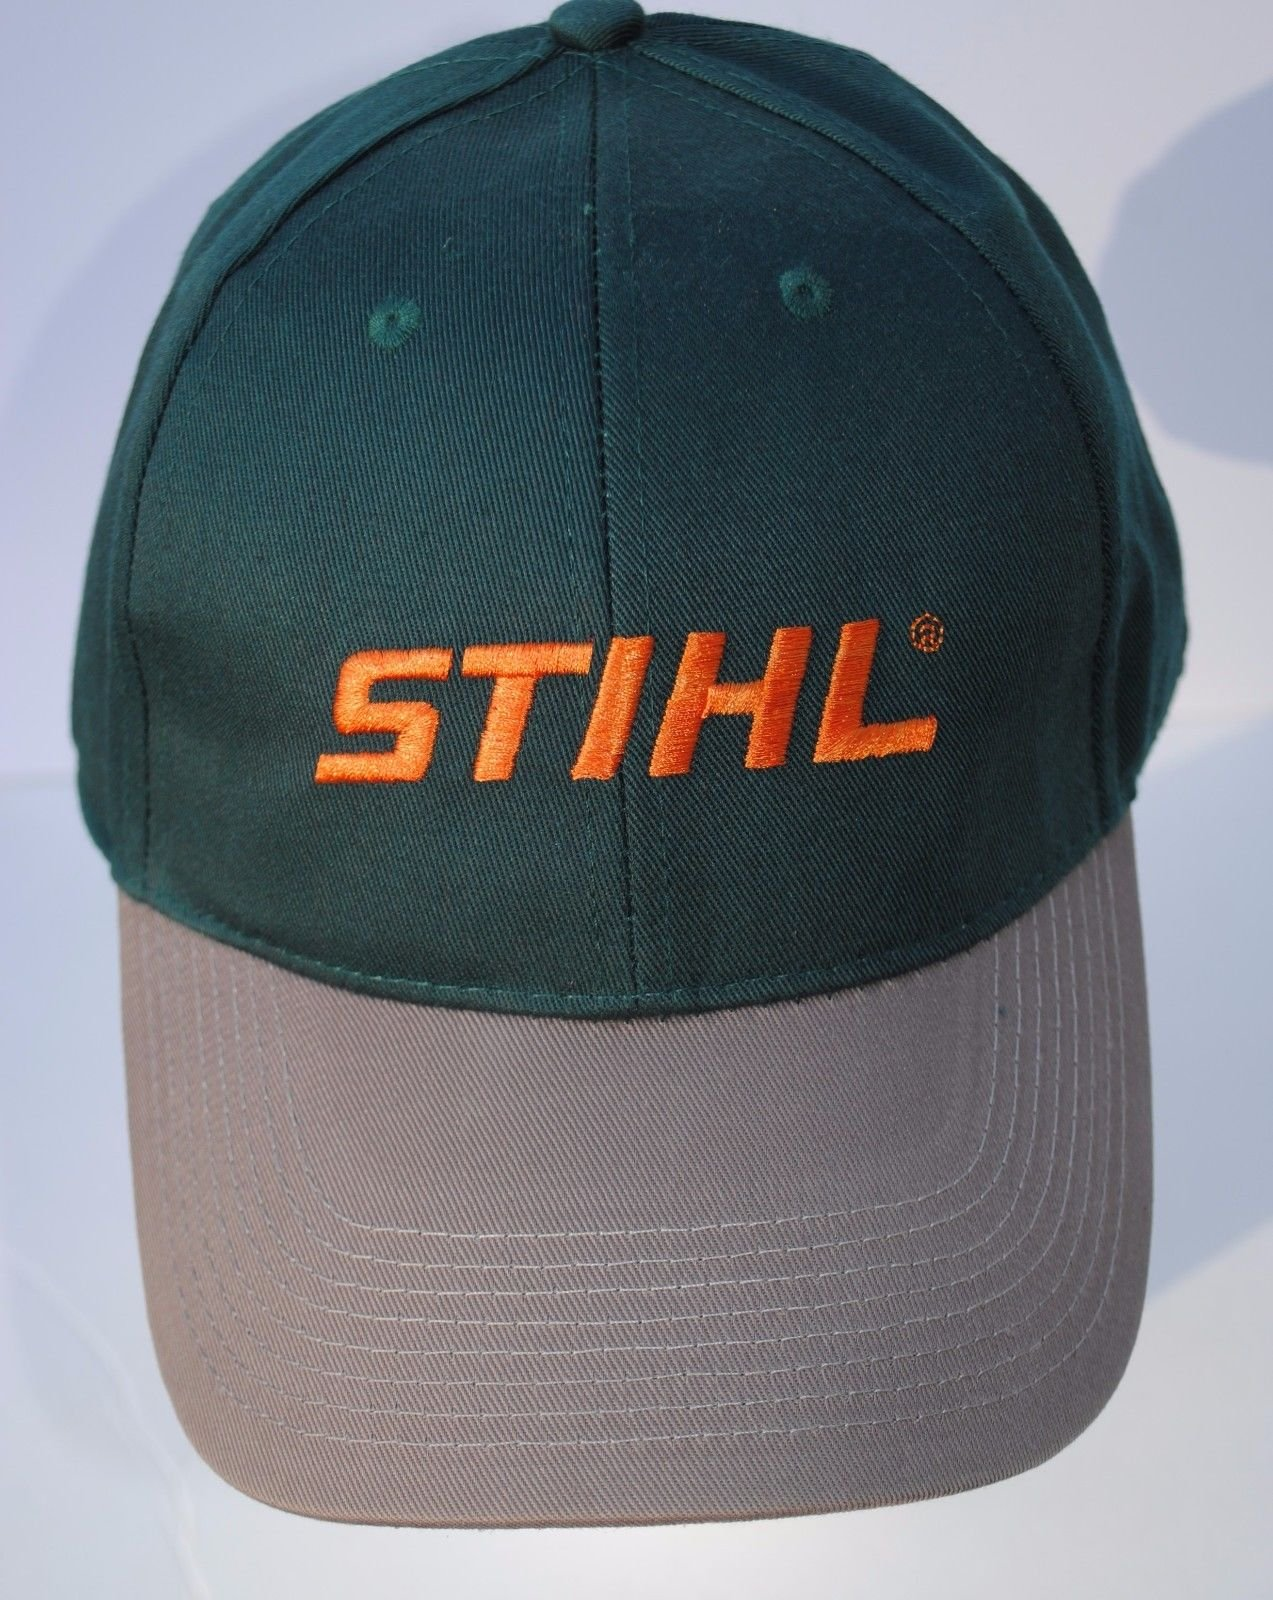 90d473a33e7 Get Quotations · Stihl Forest Green Fabric Hat   Cap With Orange Embroidered  Stihl Logo